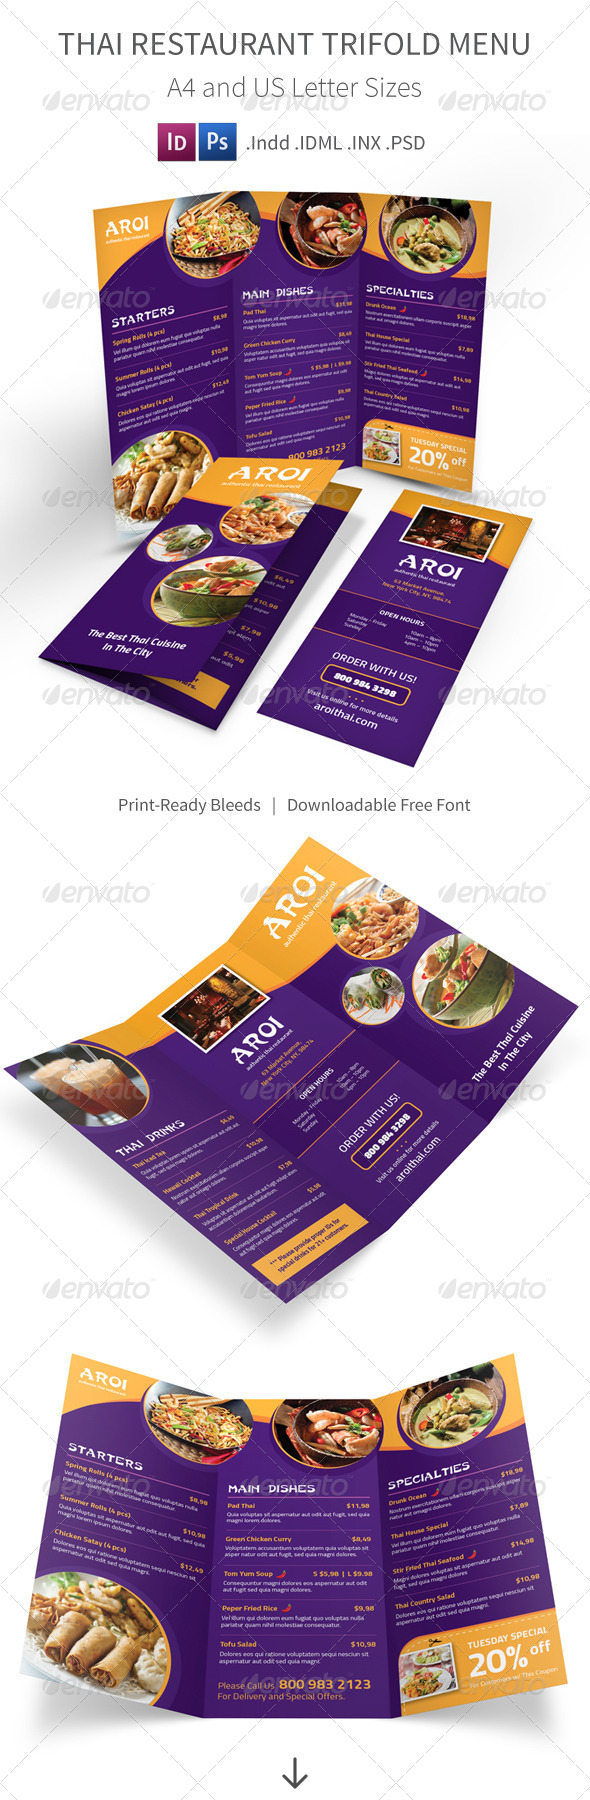 GraphicRiver Thai Restaurant Trifold Menu 8187785